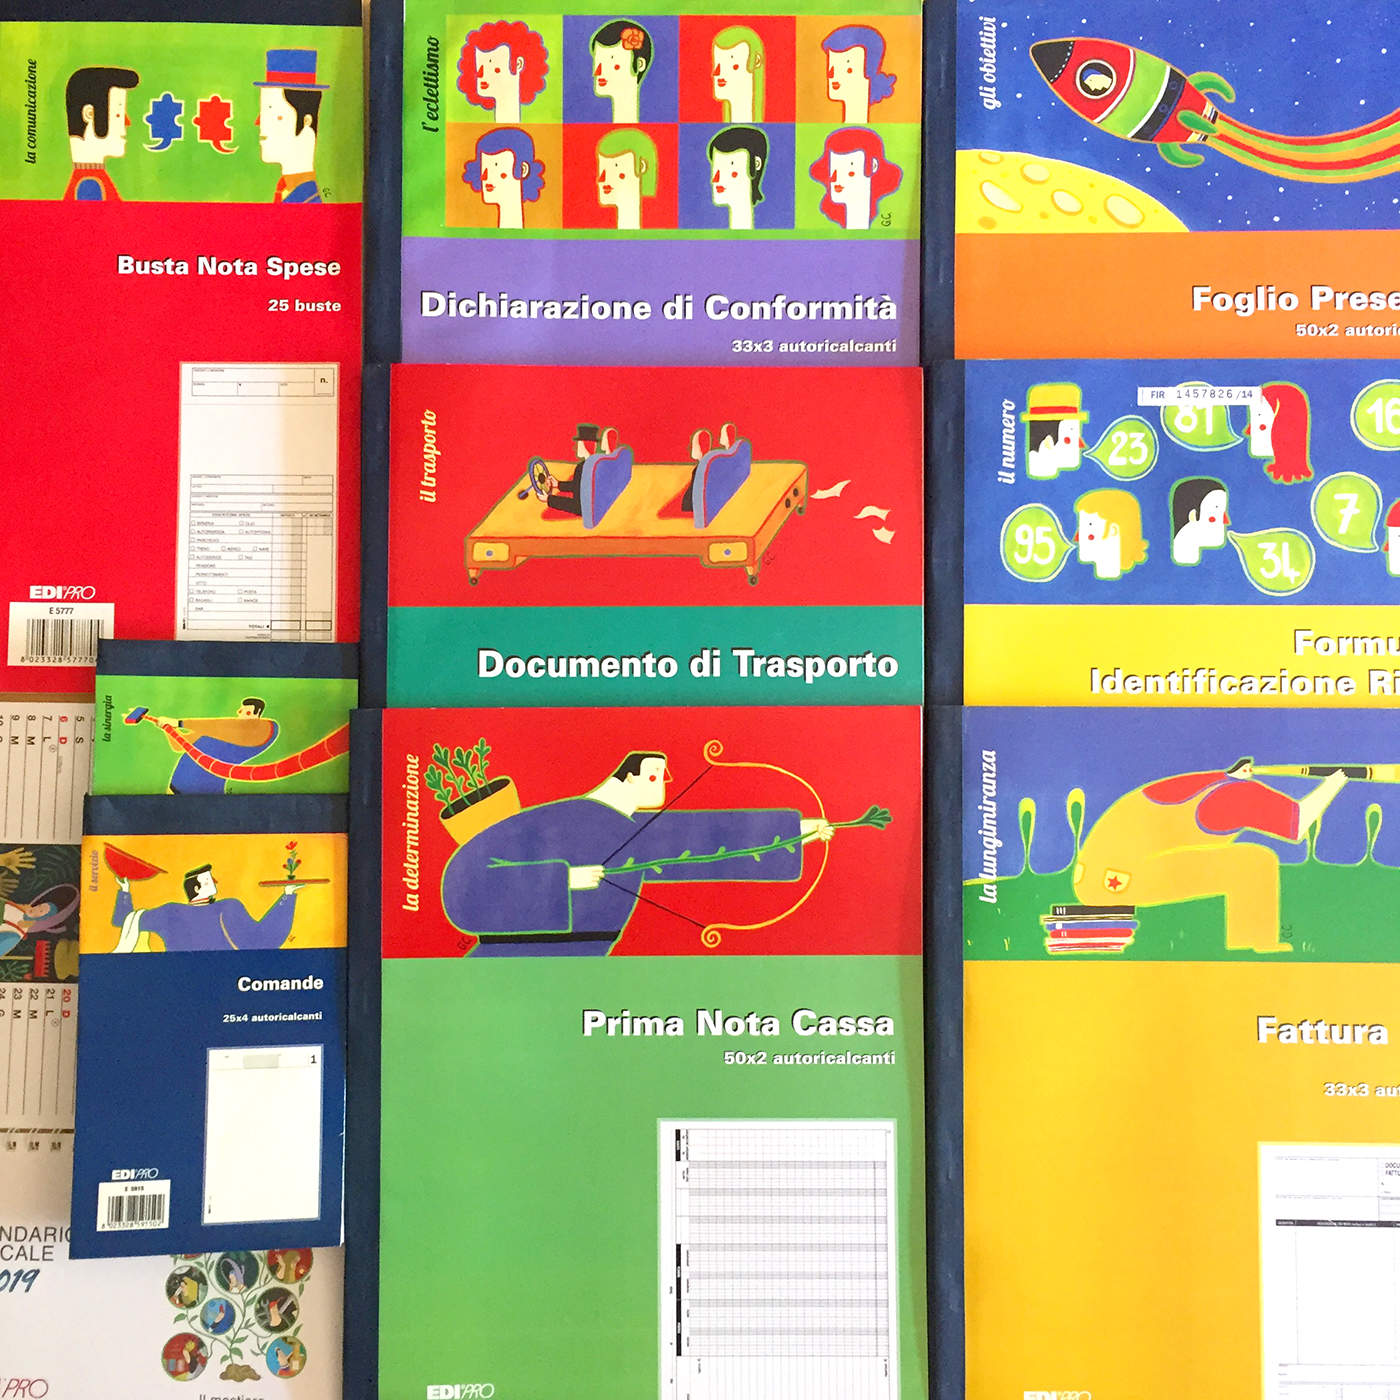 Covers for Edipro S.r.l., a company specialized in manuals, textbooks, registers and stationery.